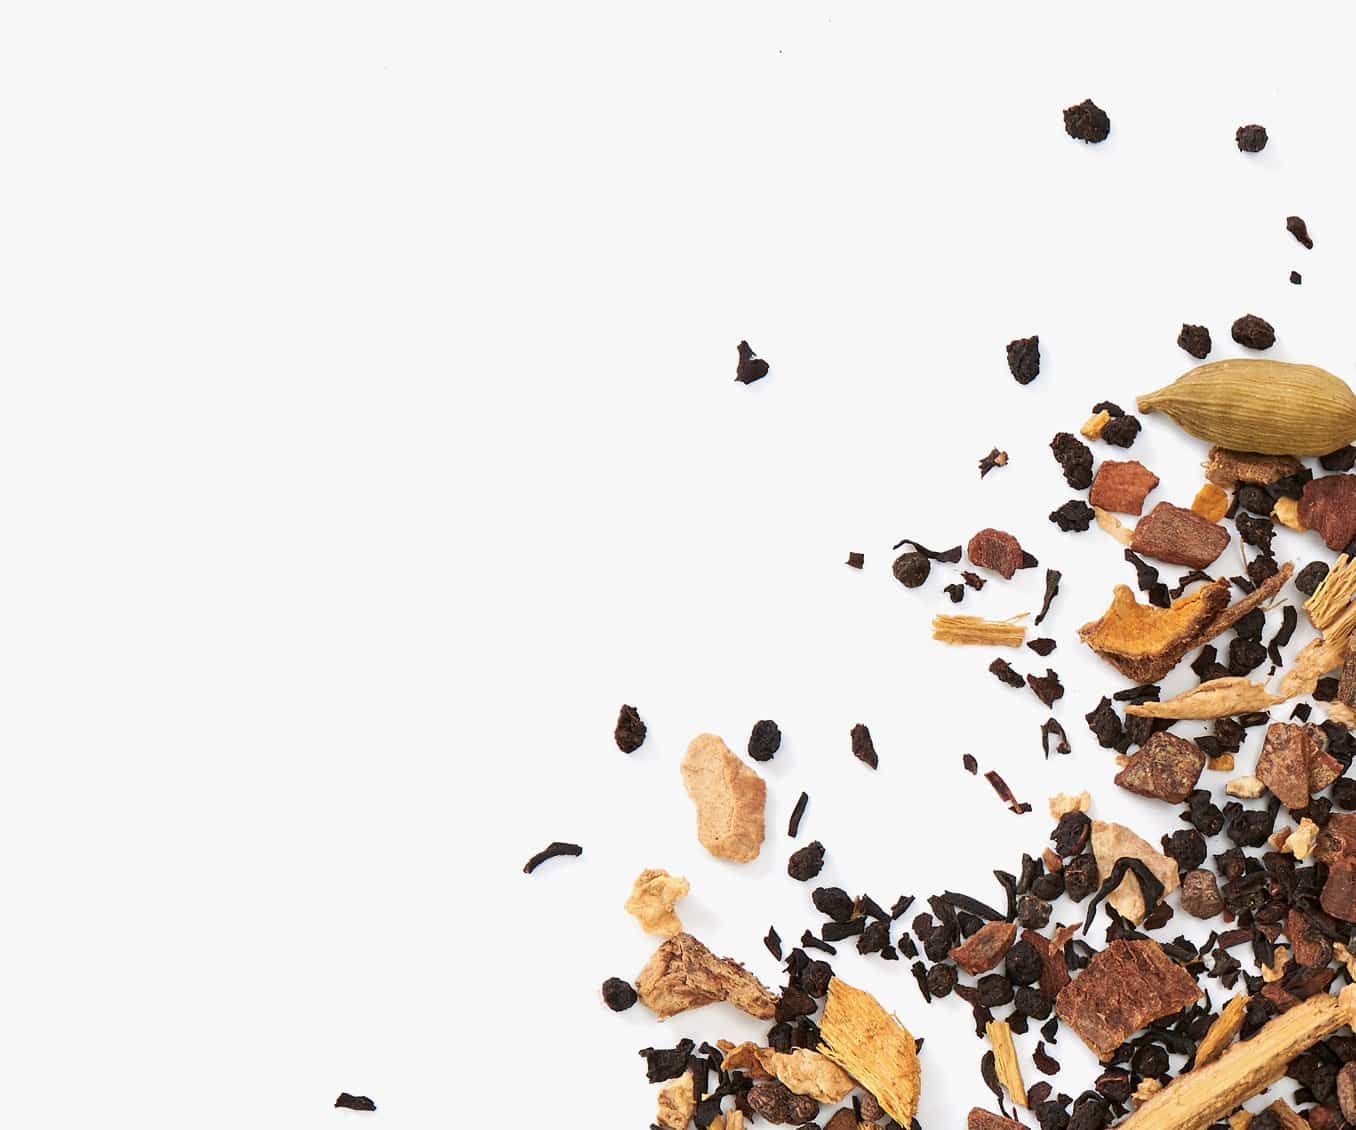 Loose leaf chai tea placed in the bottom right corner on a white background.